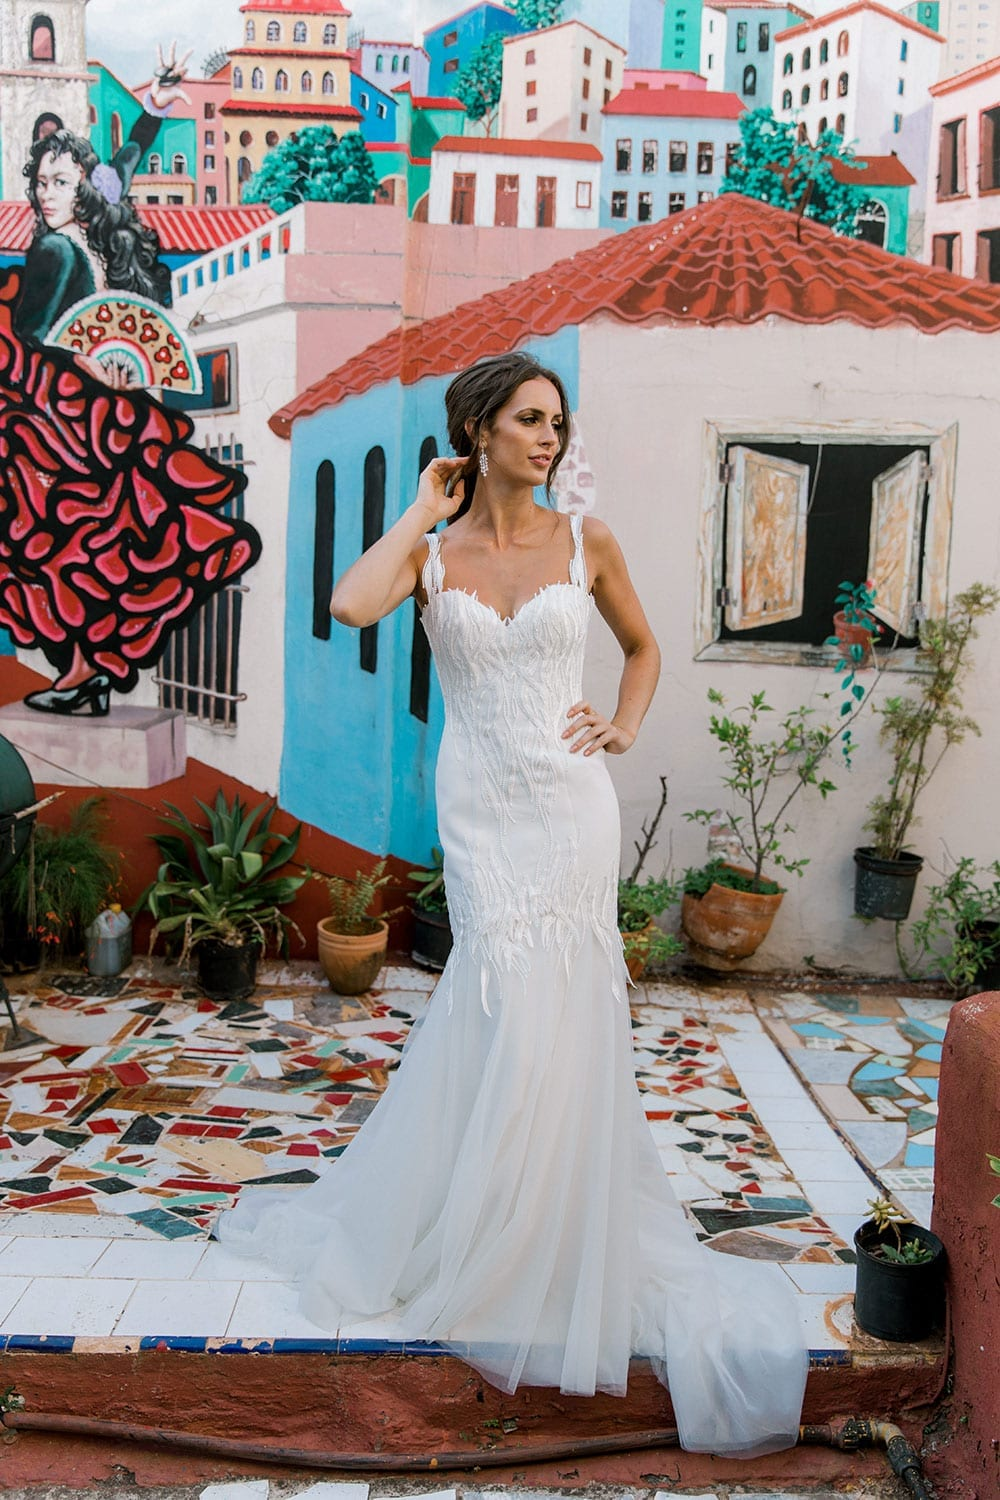 Model wearing Vinka Design Irina Wedding Dress, a n Embroidered Mermaid Lace Wedding Gown in front of colourful mural in Havana